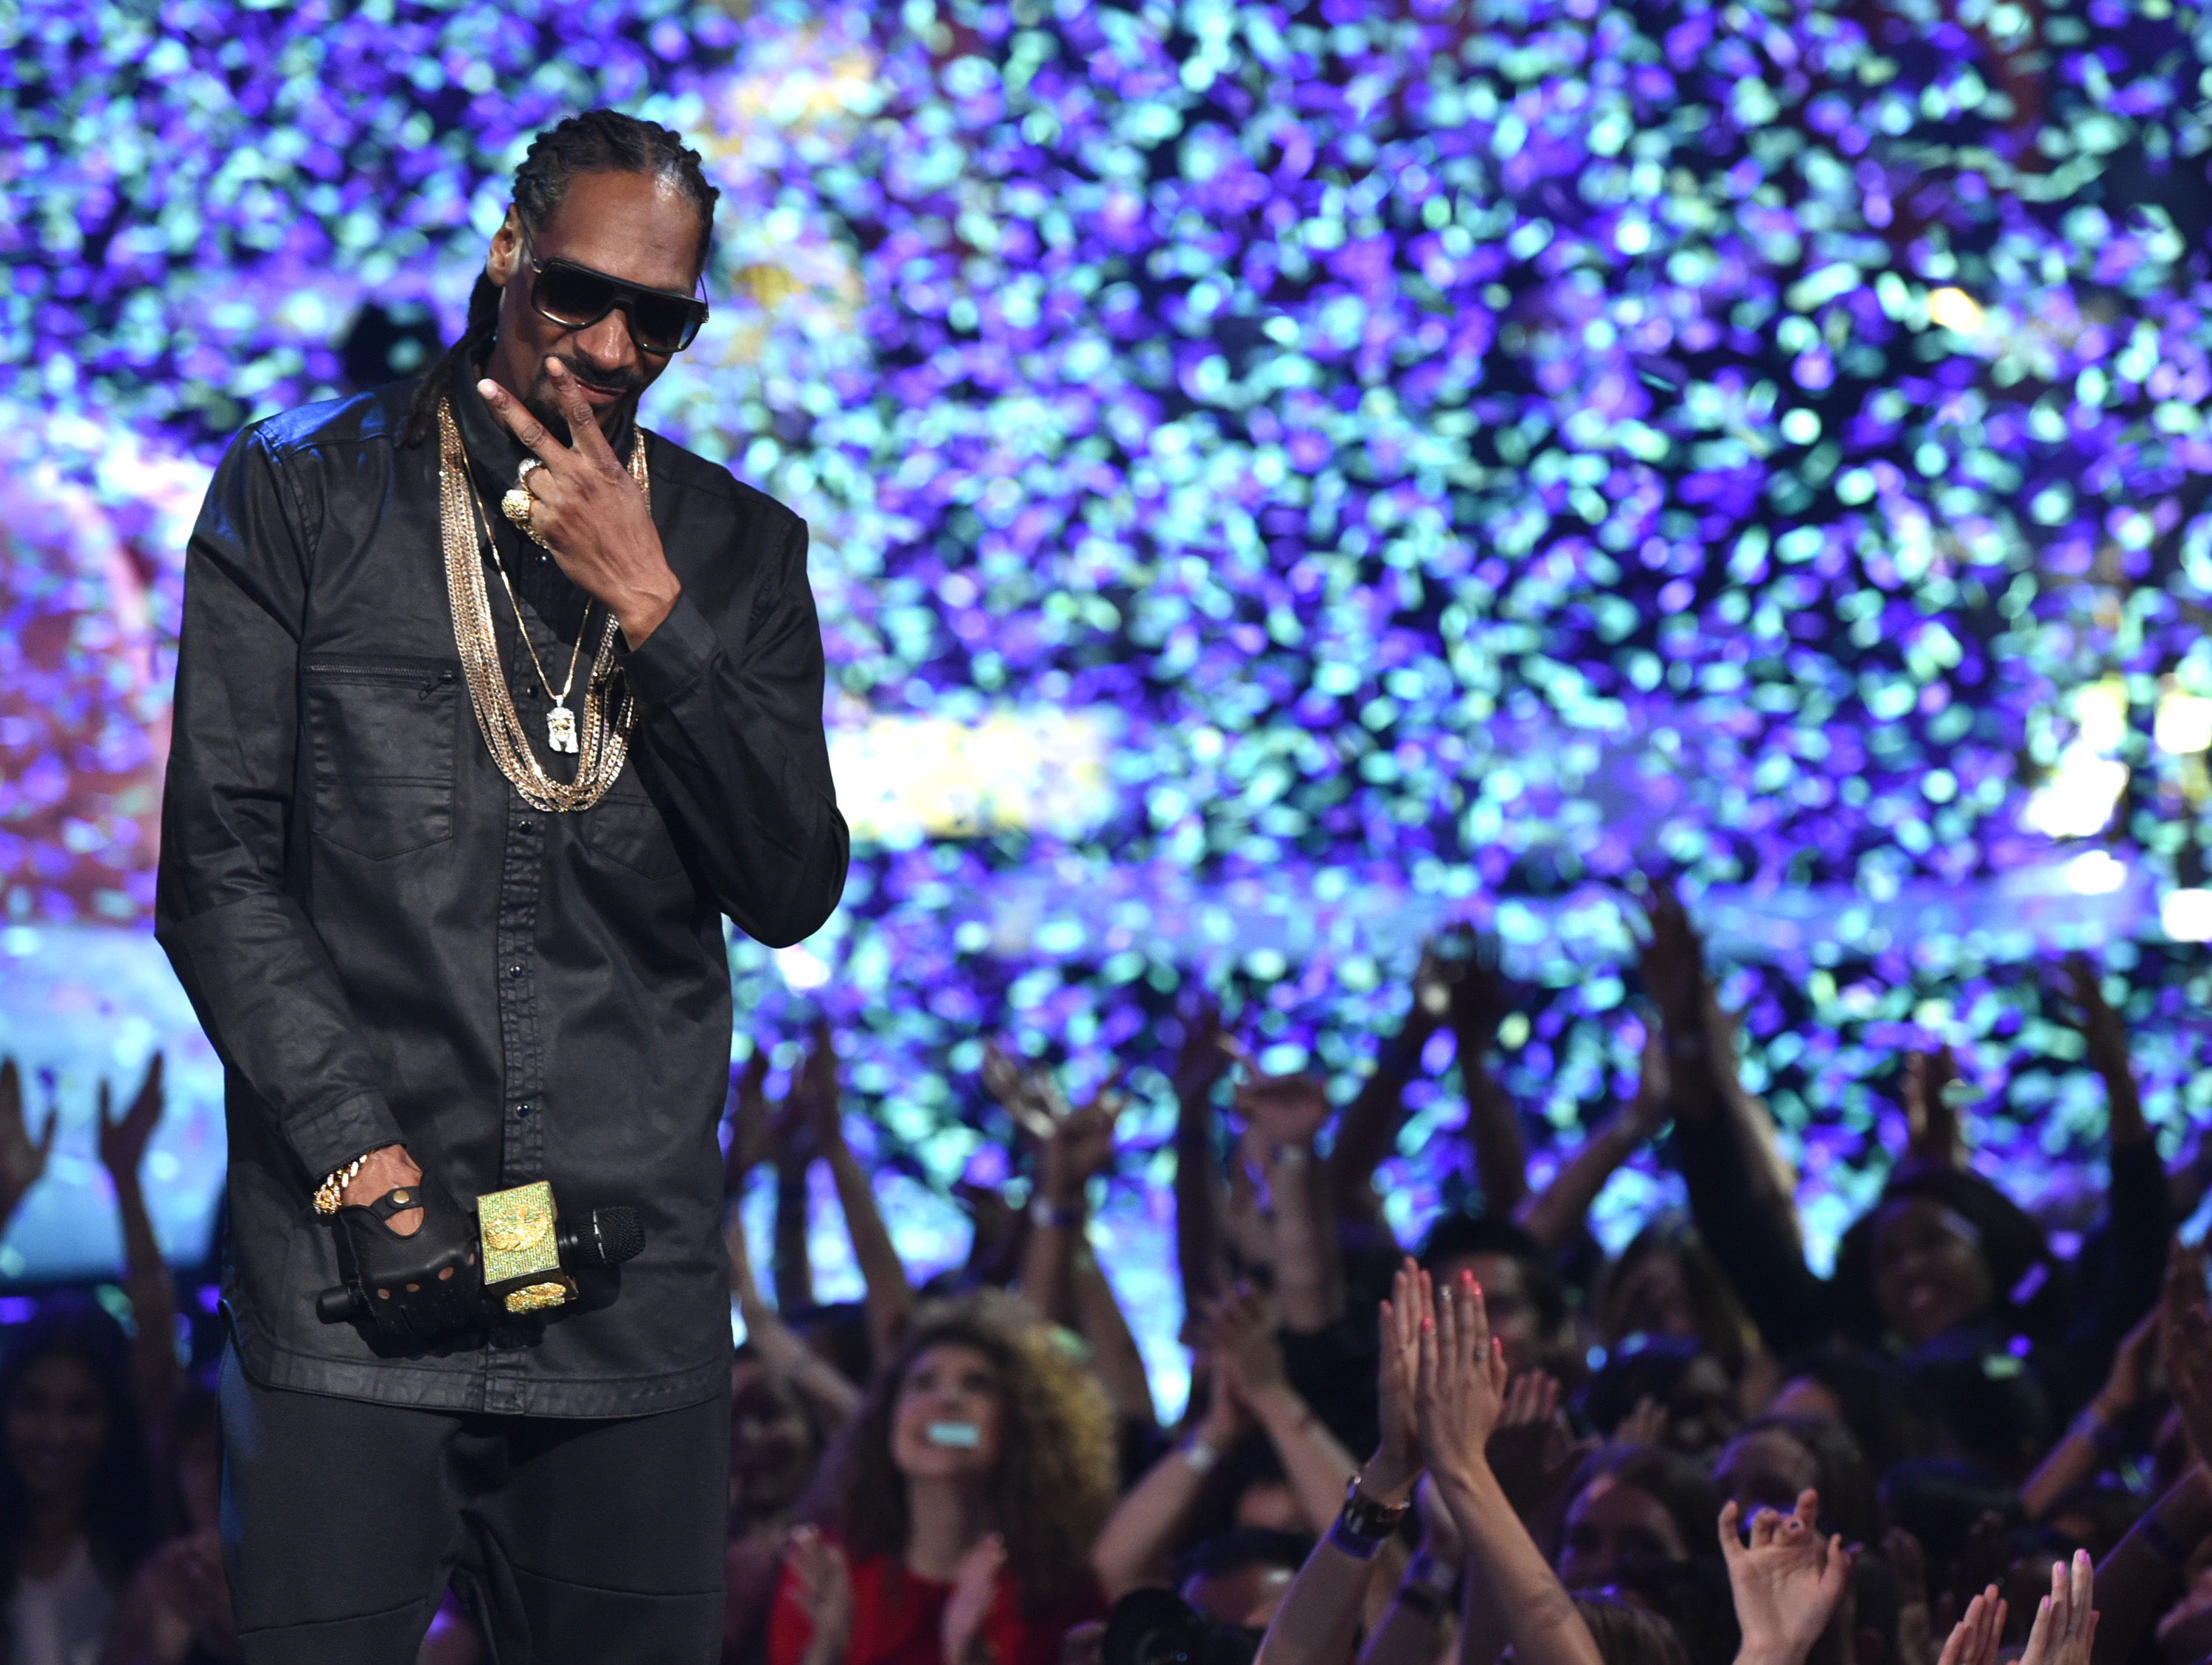 Snoop Dogg performs on stage at the iHeartRadio Music Awards at The Shrine Auditorium on Sunday, March 29, 2015, in Los Angeles.